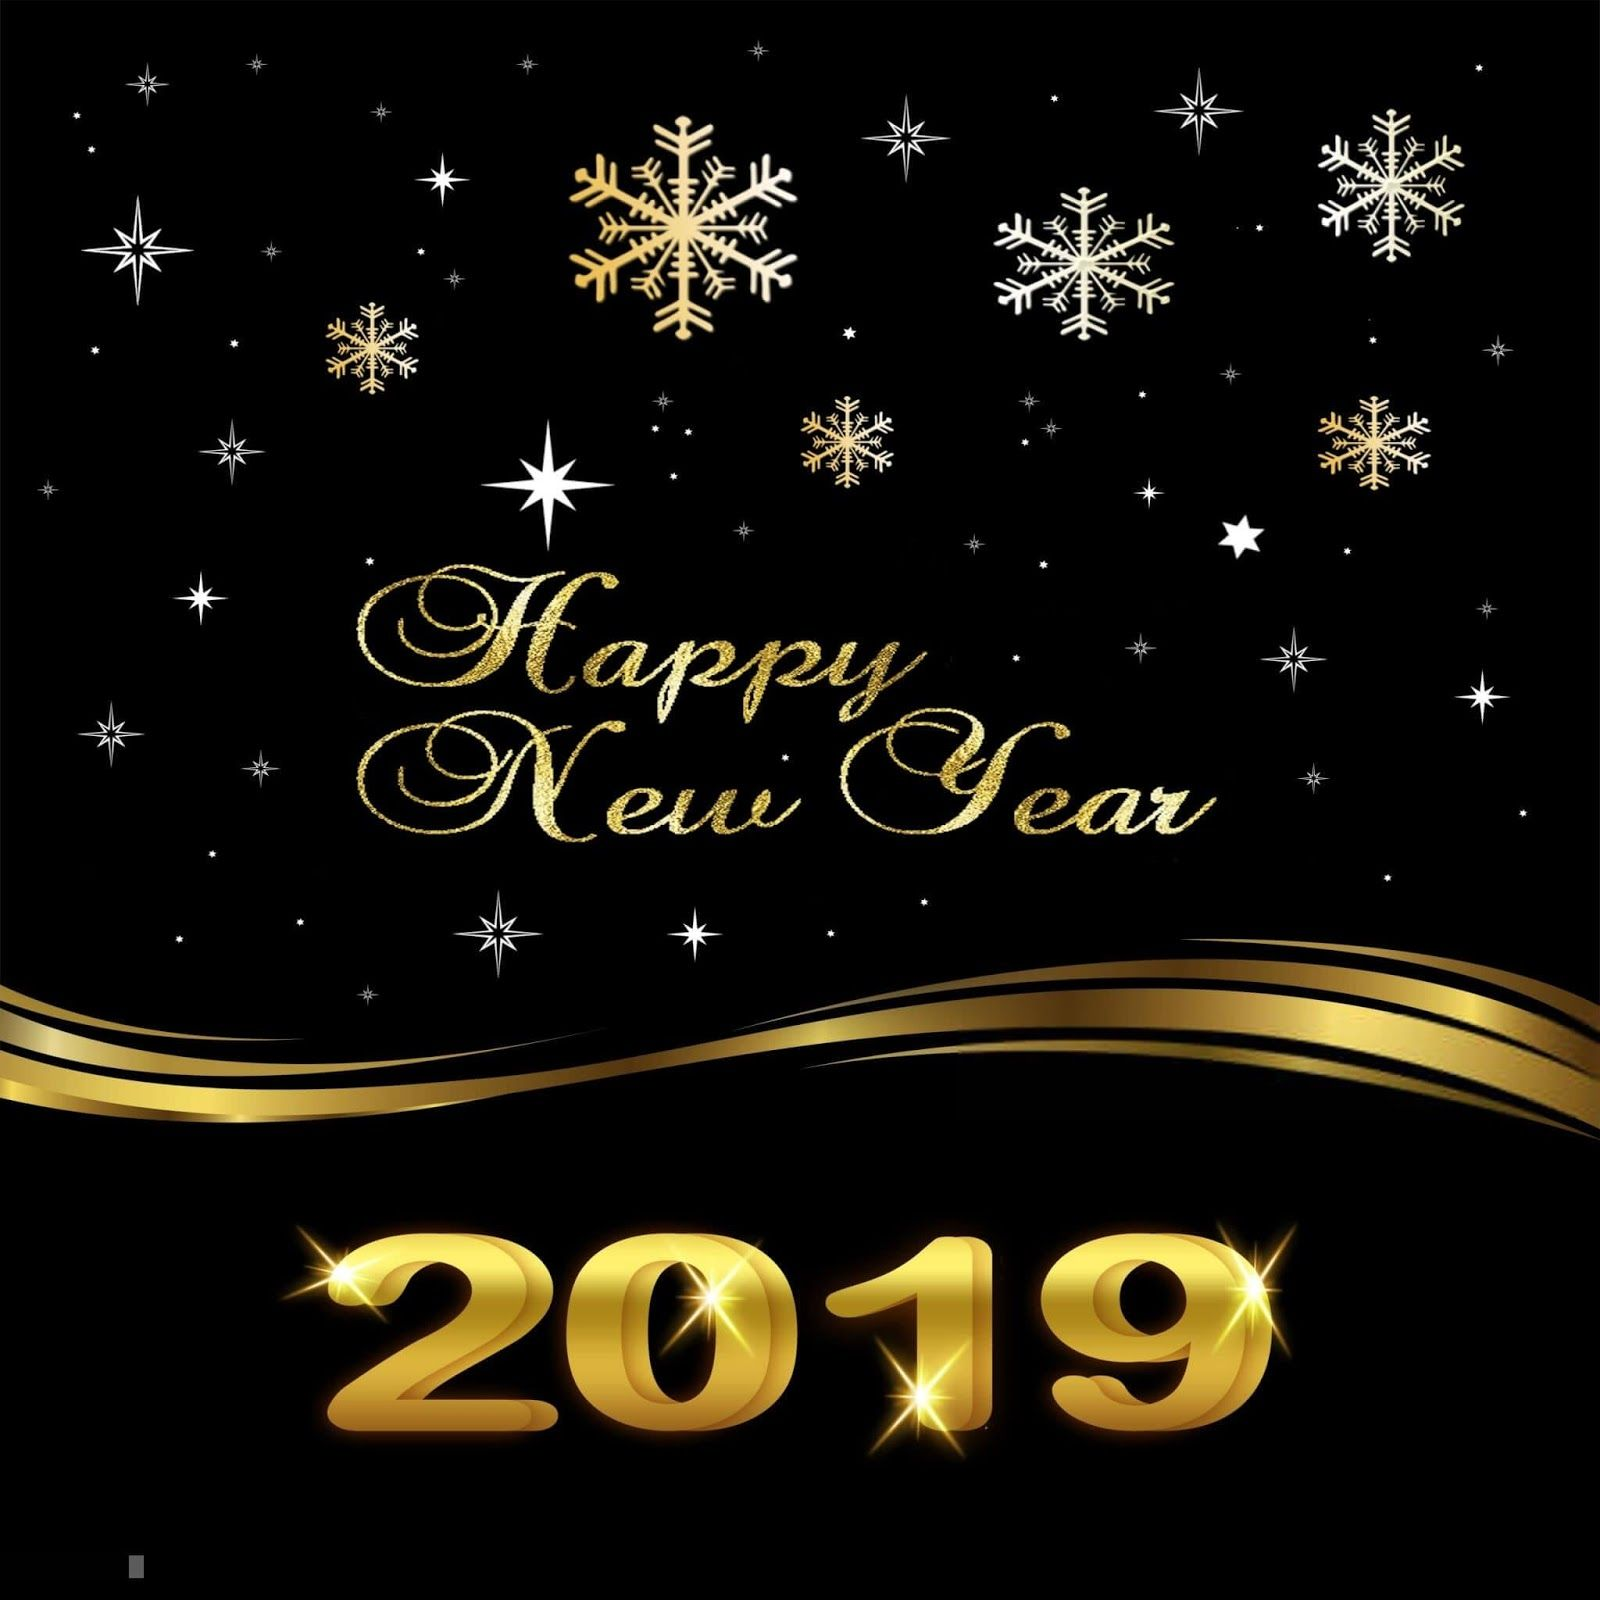 Happy New Year 2021 Hd Wallpaper Images Download Free Happy New Year Wallpaper Happy New Year Hd New Year Wallpaper